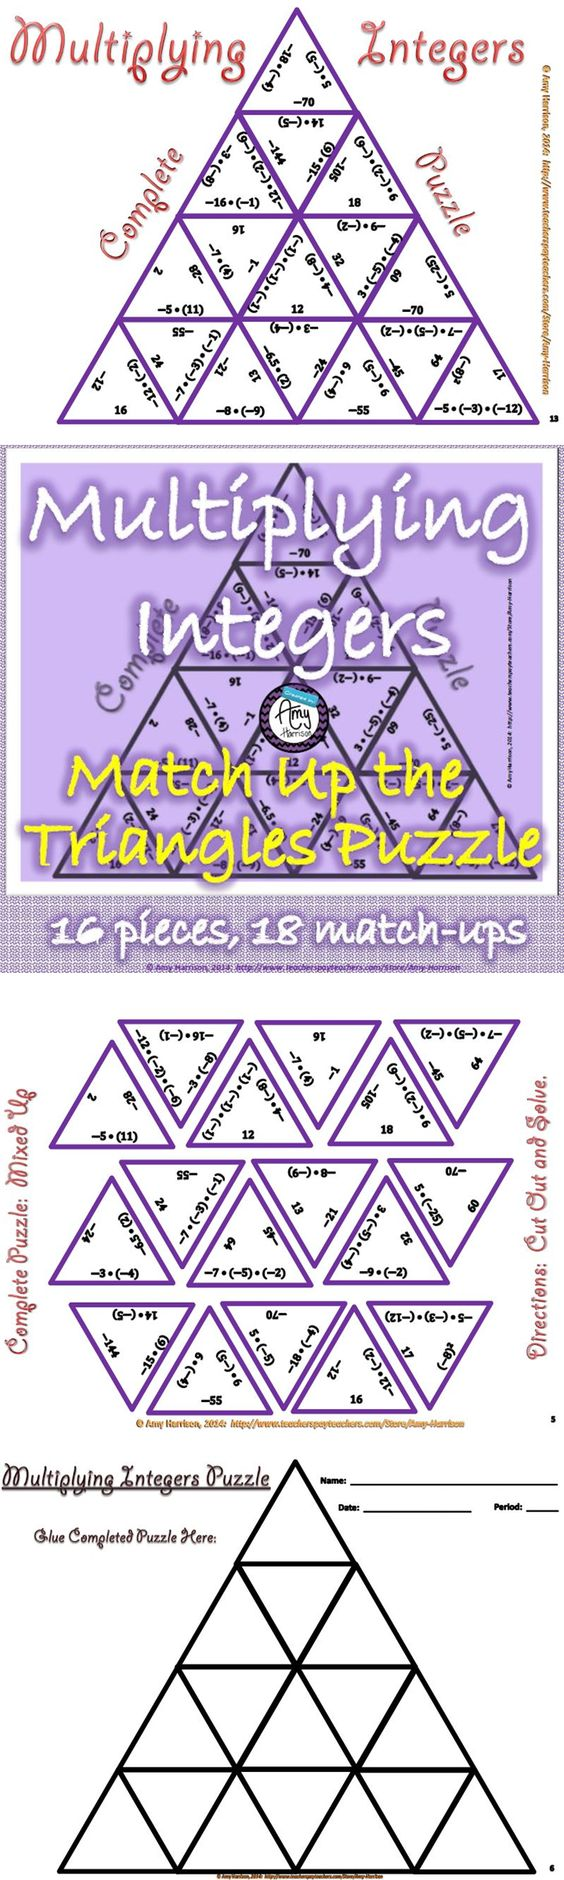 Adding subtracting multiplying and dividing integers puzzle worksheet